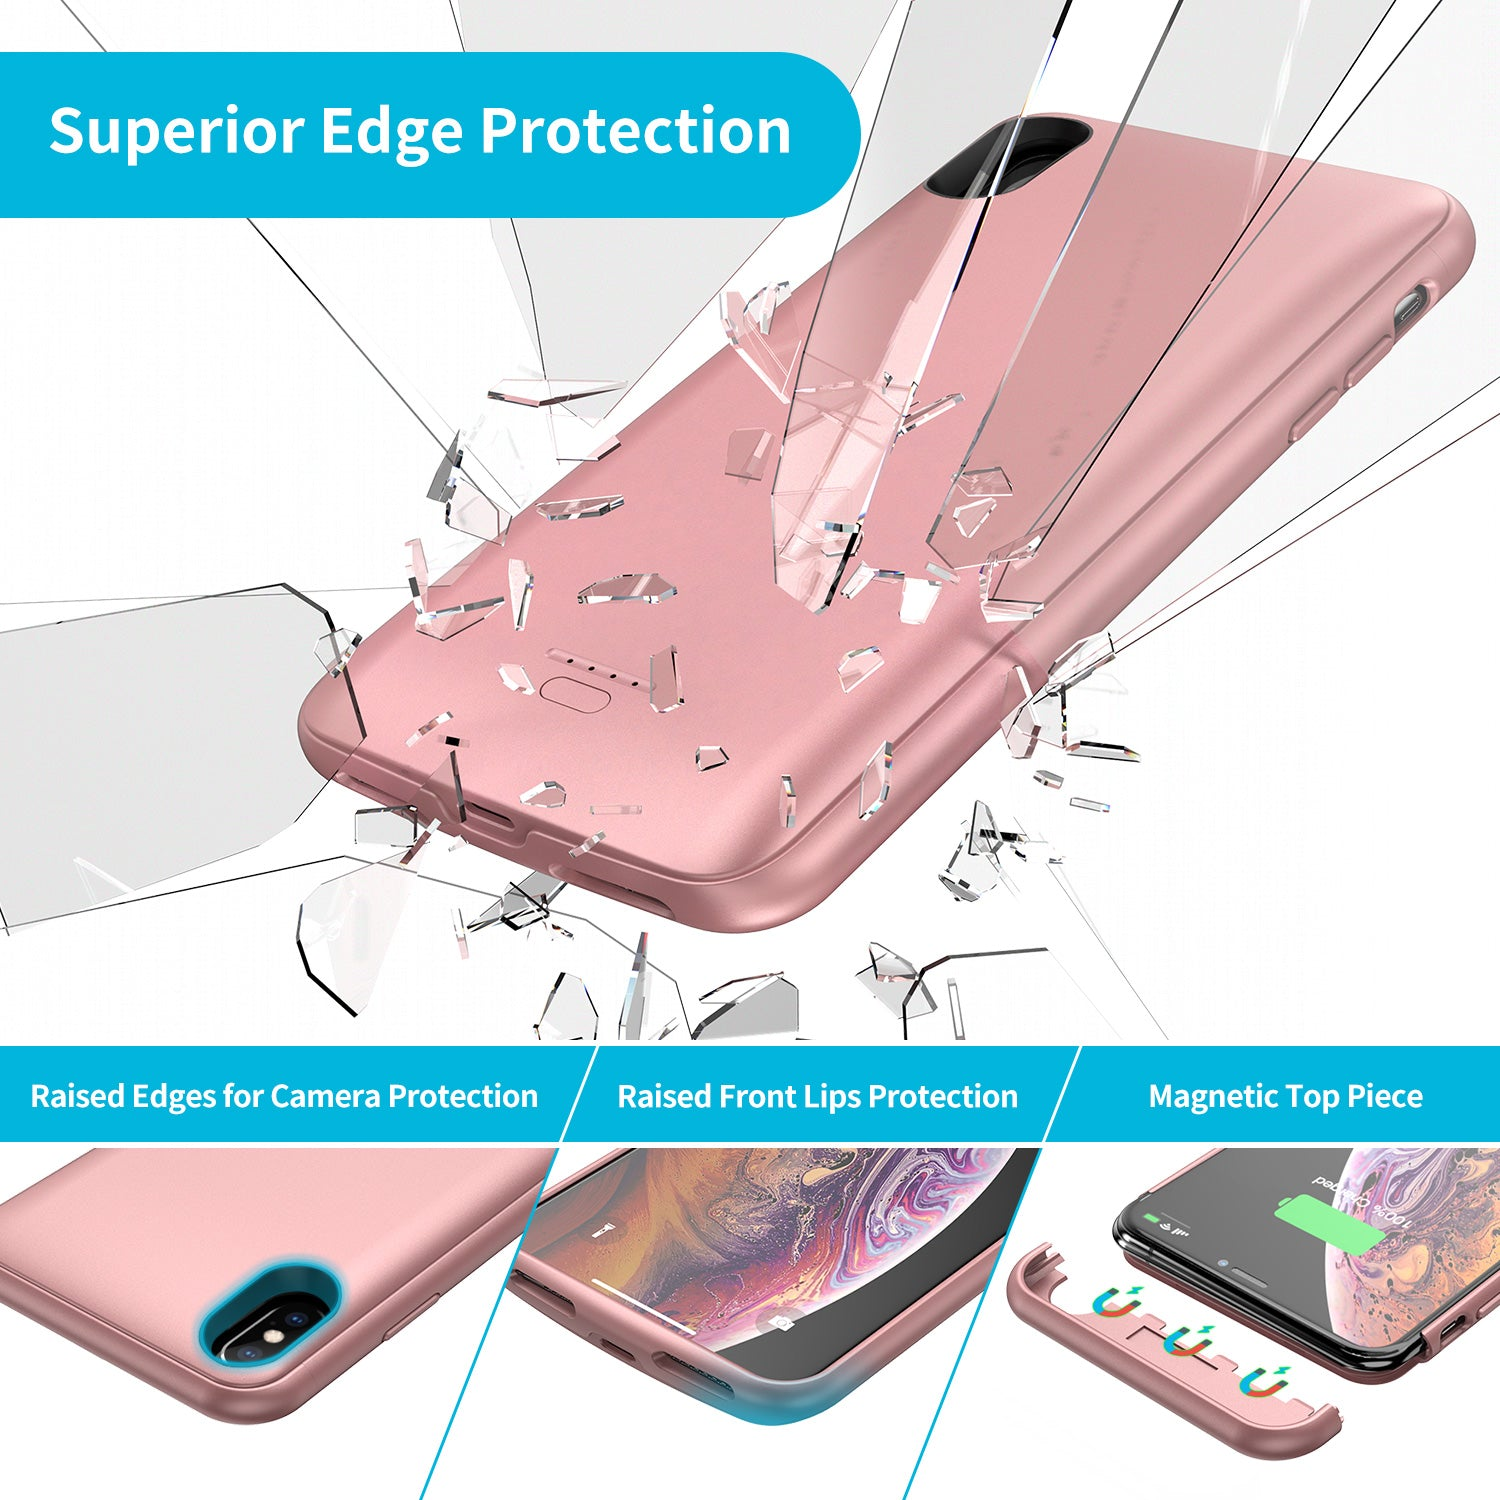 Battery Case for iPhone XS Max, 5000mAh Portable Protective